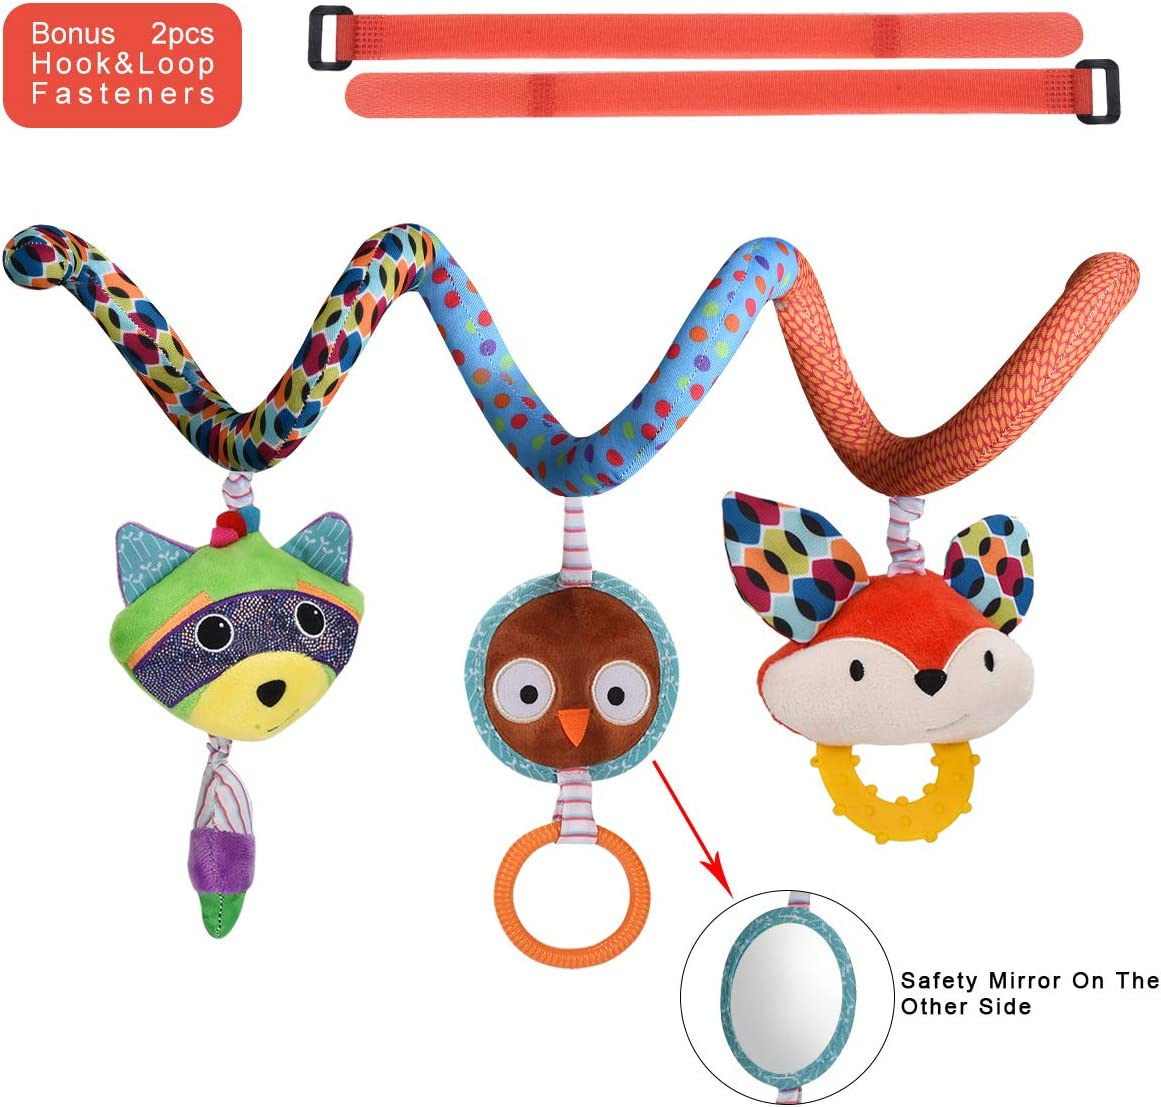 HAHA Baby Car Seat Toys, Infant Boy Girl Stroller Hanging Teething Rattle Learning Spiral Toy Newborn Soft Crib Play Gym Travel Accessories for 0 3 6 9 to 12 Months Old with Mirror, Ring, Teether